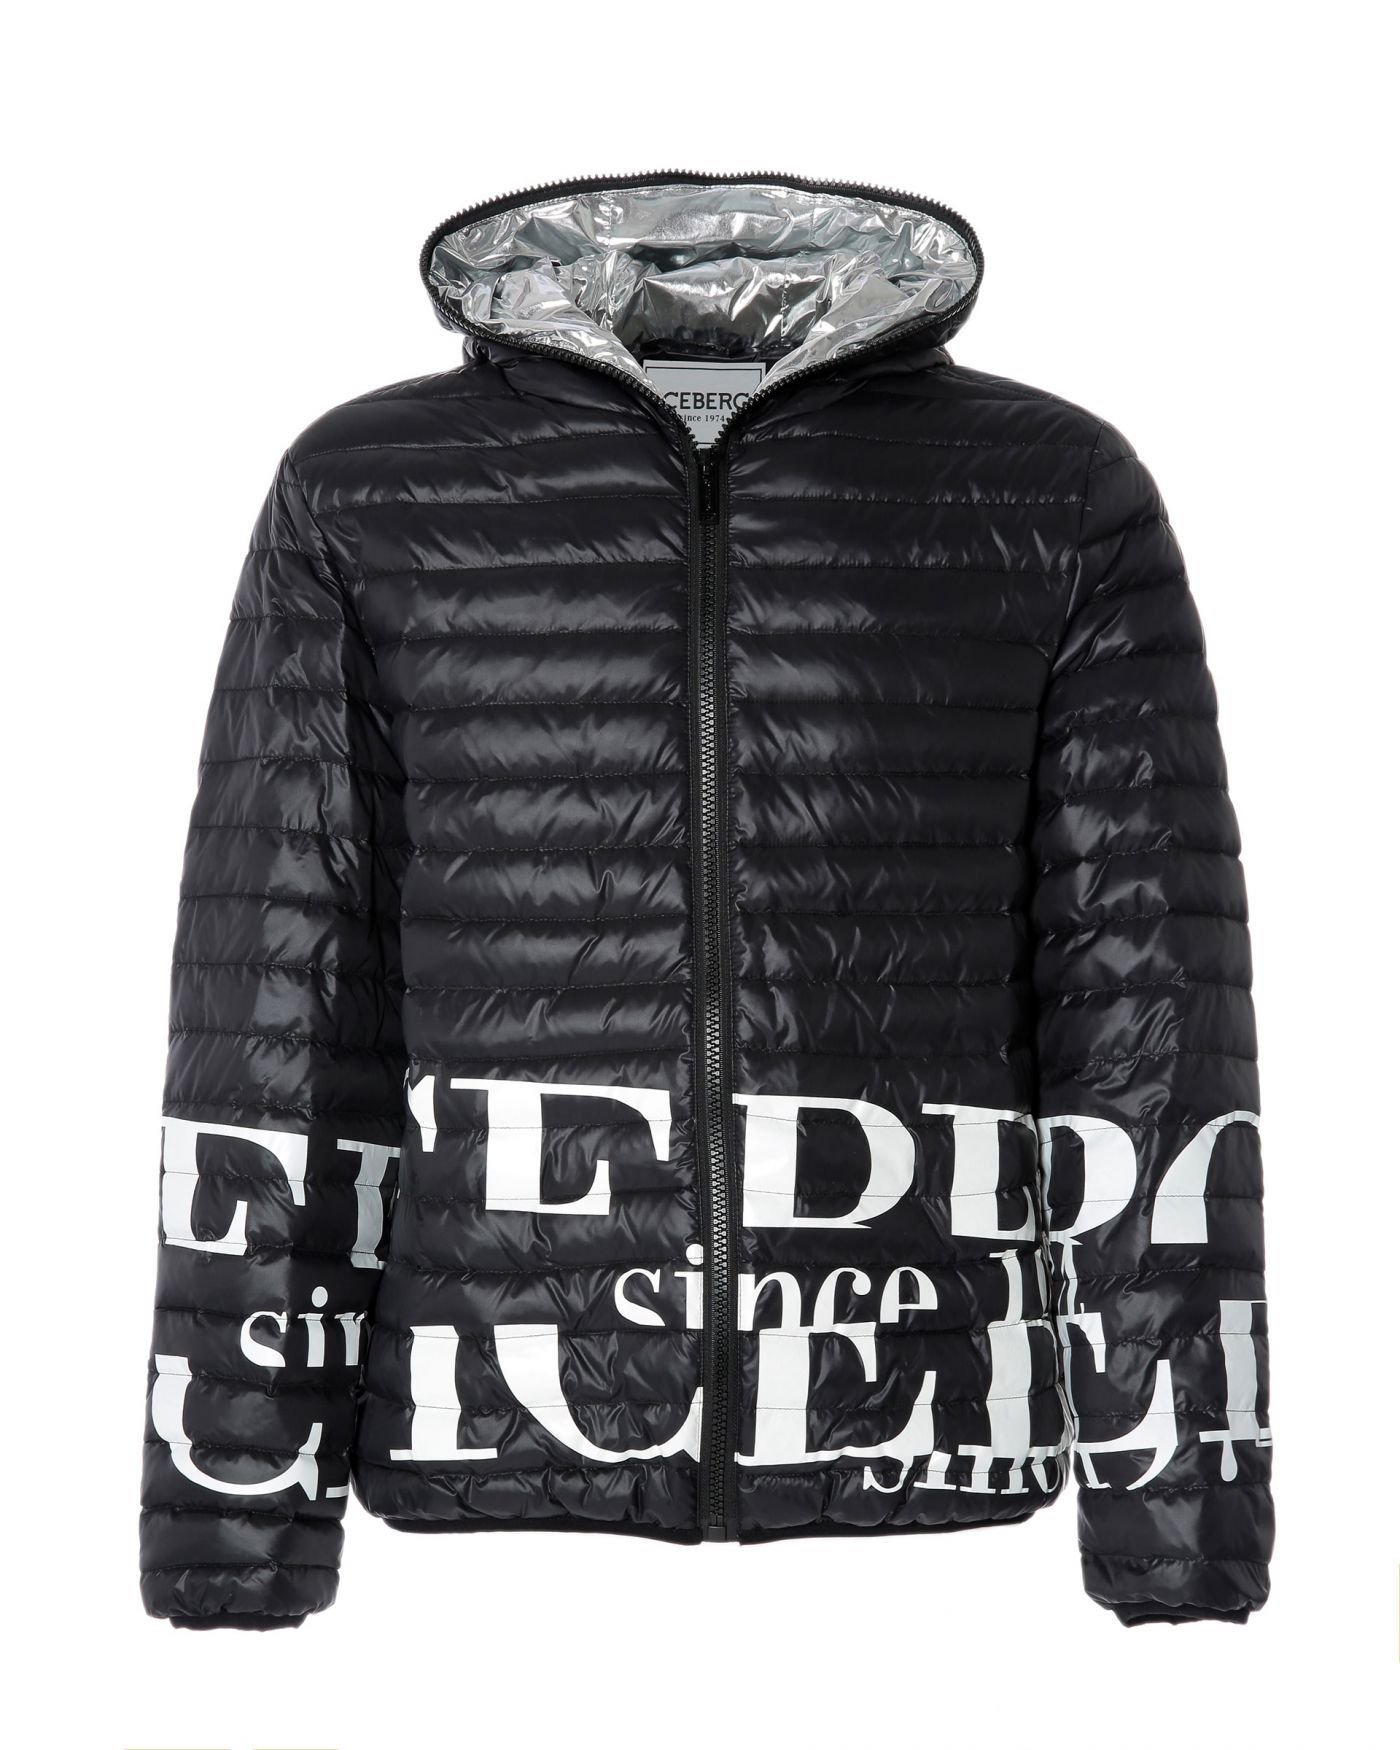 Iceberg Shop Online Clothing For Men And Women Home Online Shopping Clothes Sportswear Winter Jackets [ 1750 x 1400 Pixel ]